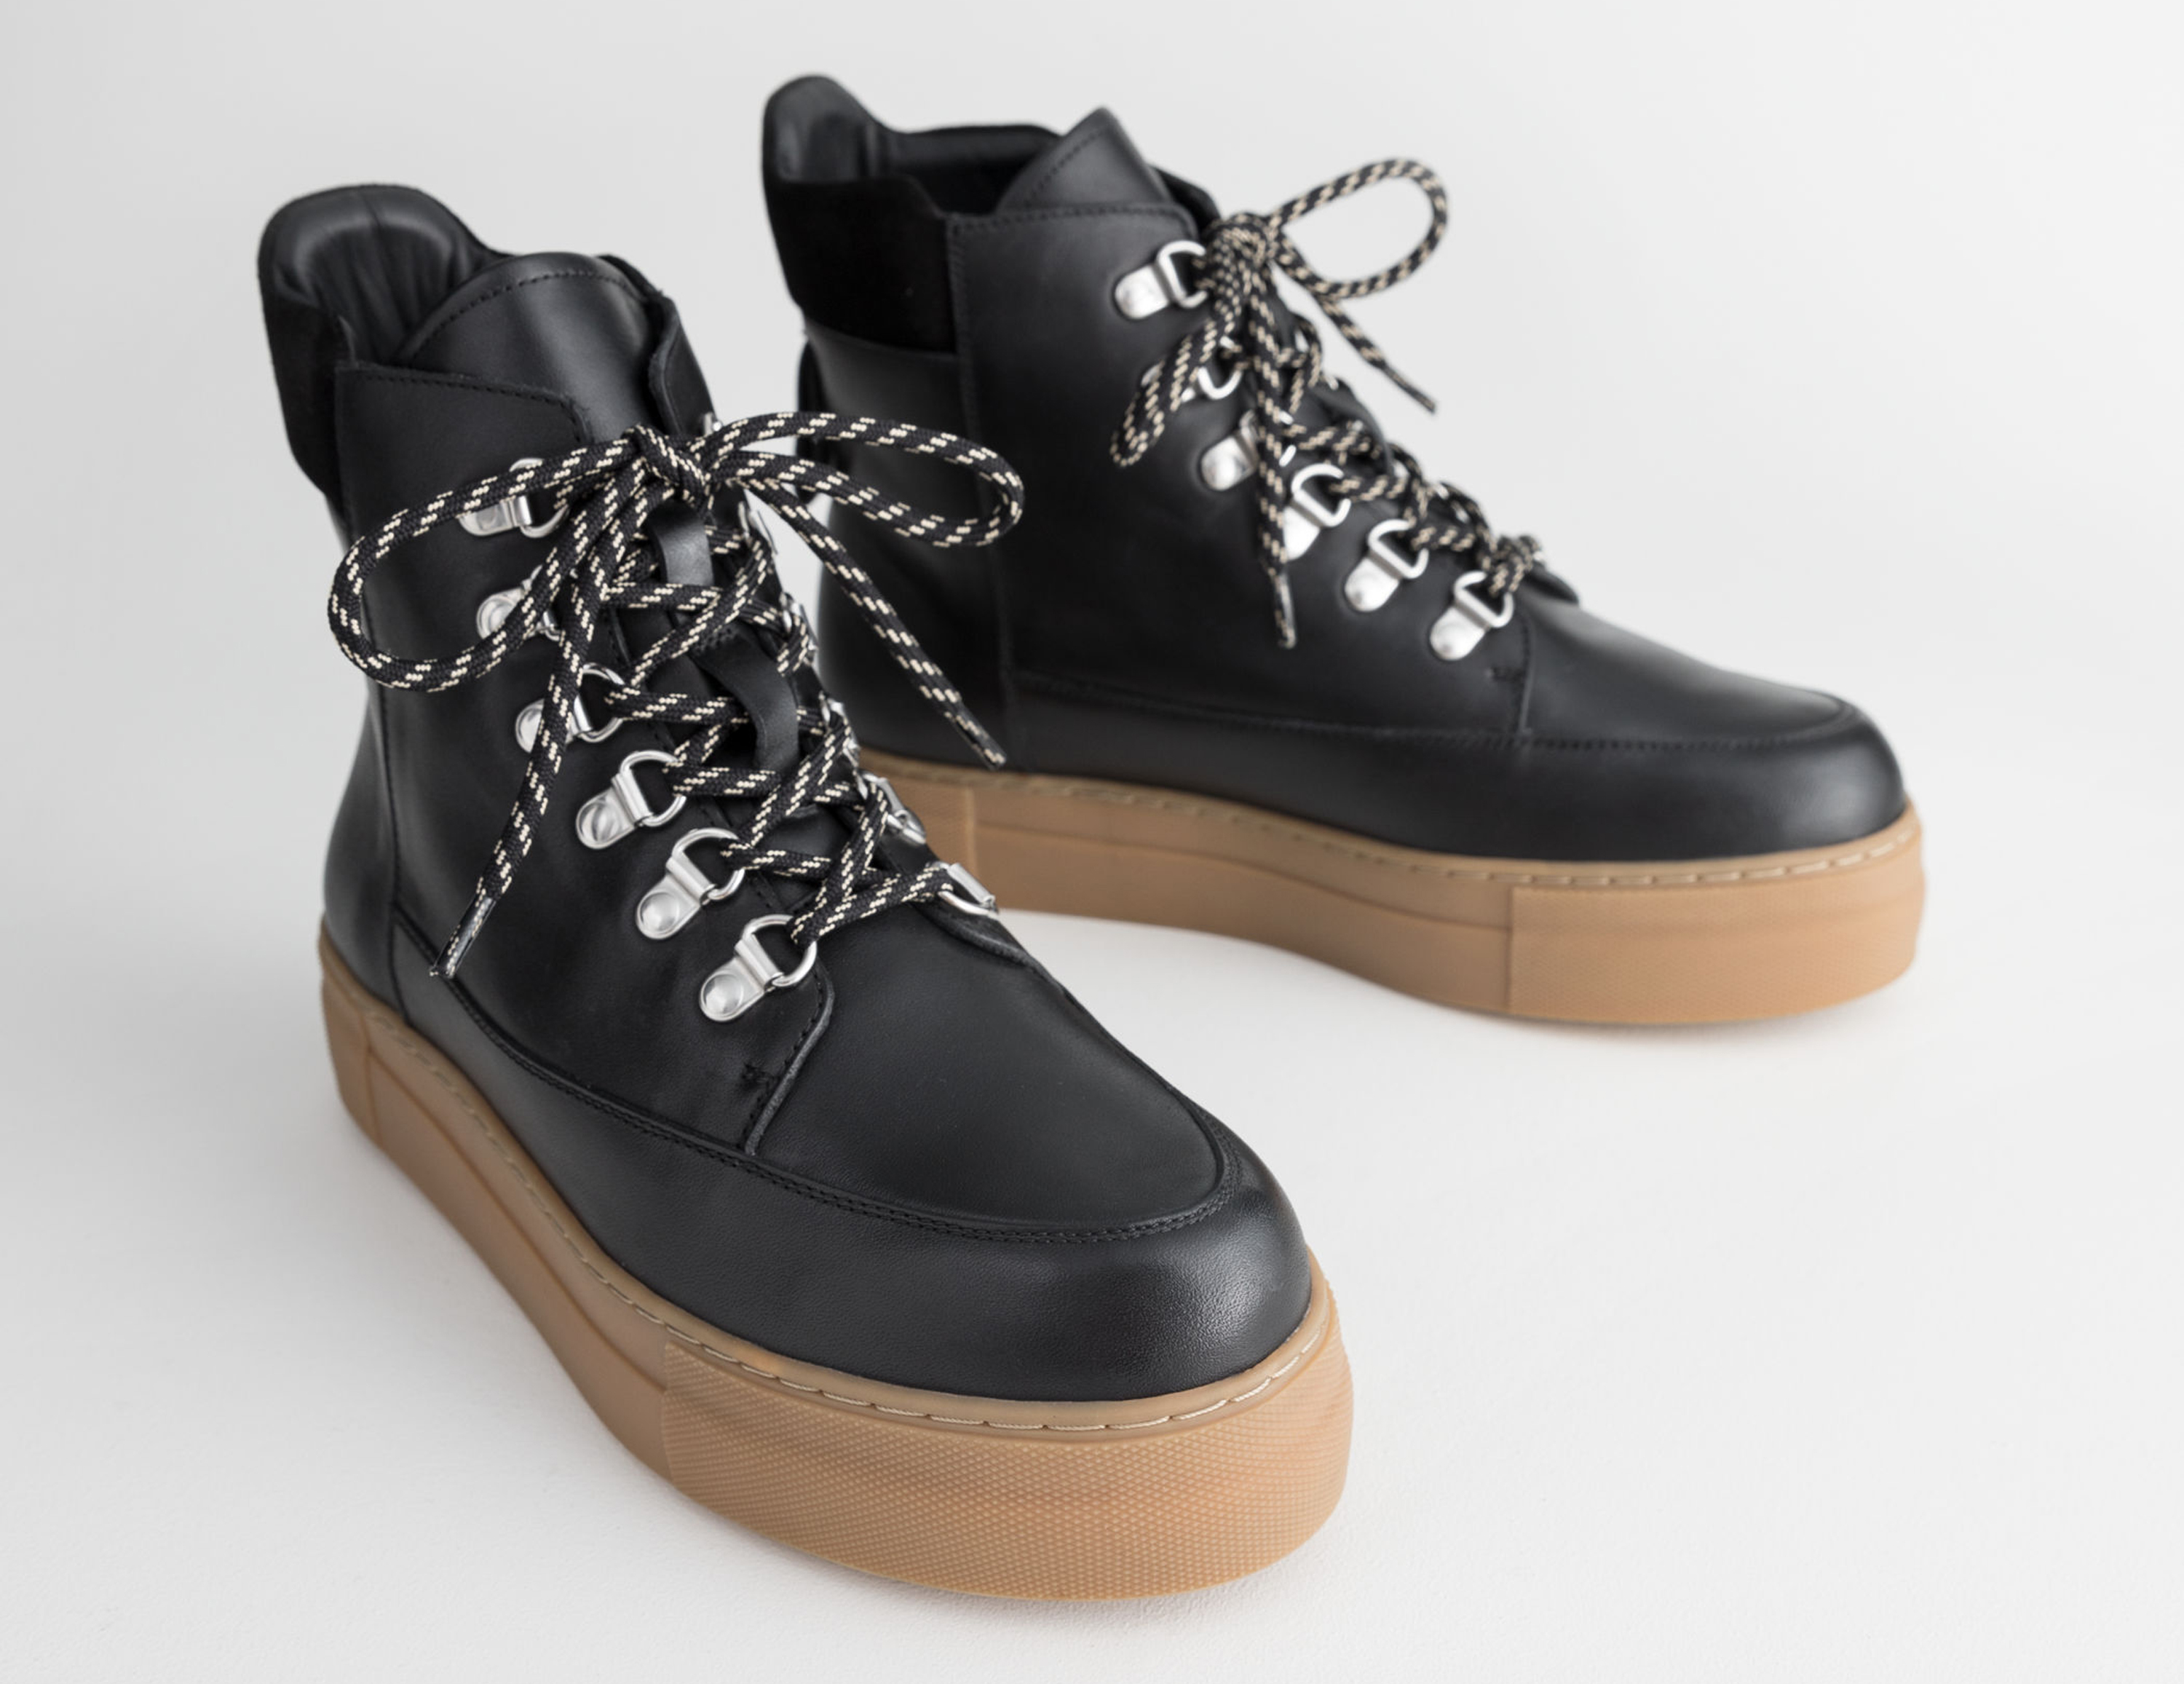 & Other Stories Lace Up Leather Snow Boots, £129/AED582.28